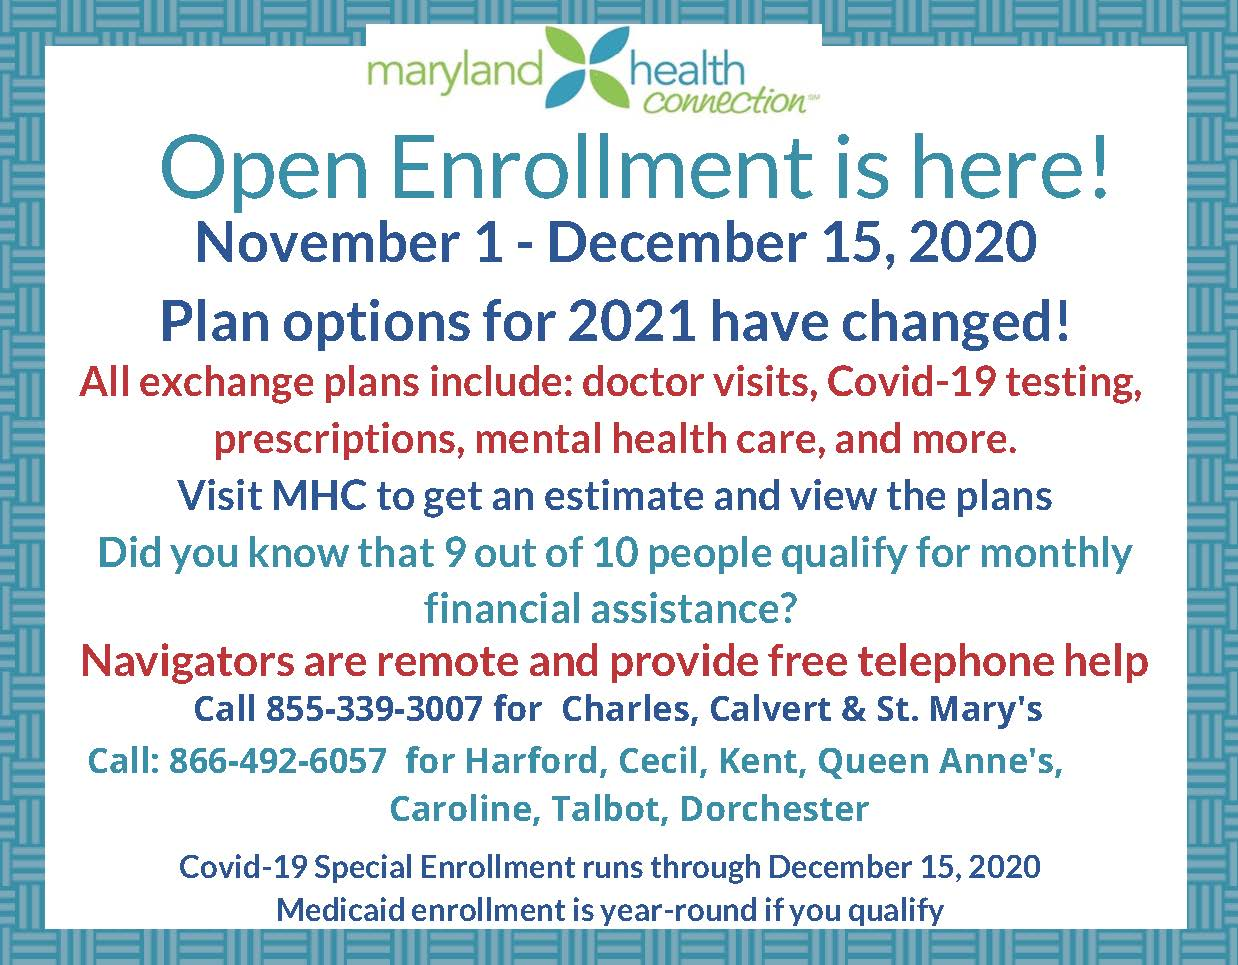 Open Enrollment, for Private Health Insurance Offered through Affordable Care Act, Opens on November 1